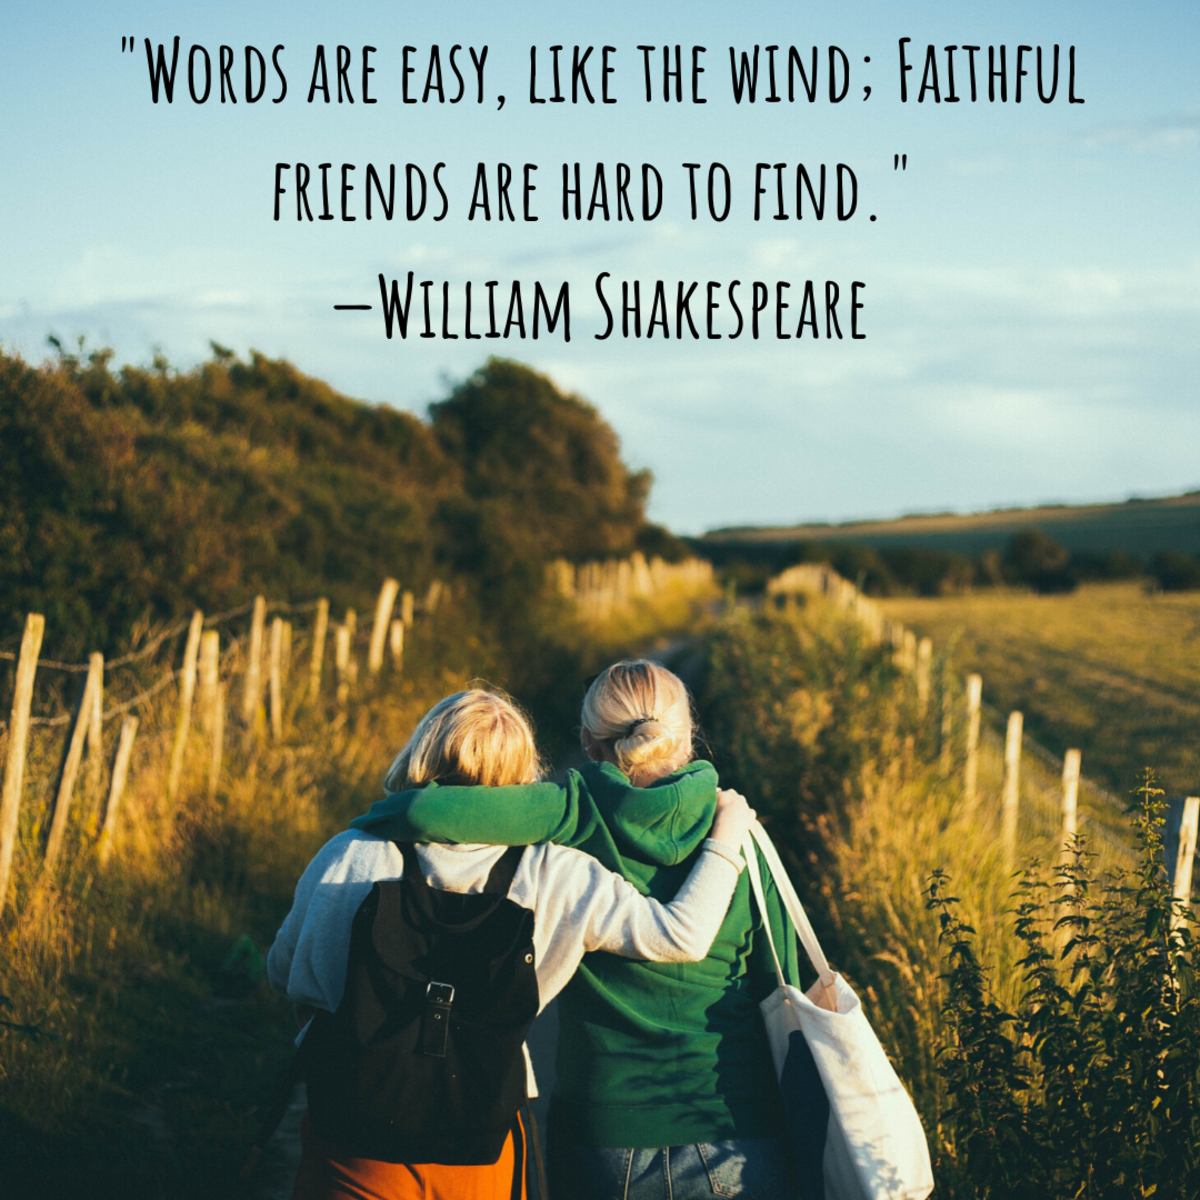 It's difficult to express to friends just how much they mean to us. Luckily, we have the eloquent words of history's greatest minds to help us along.